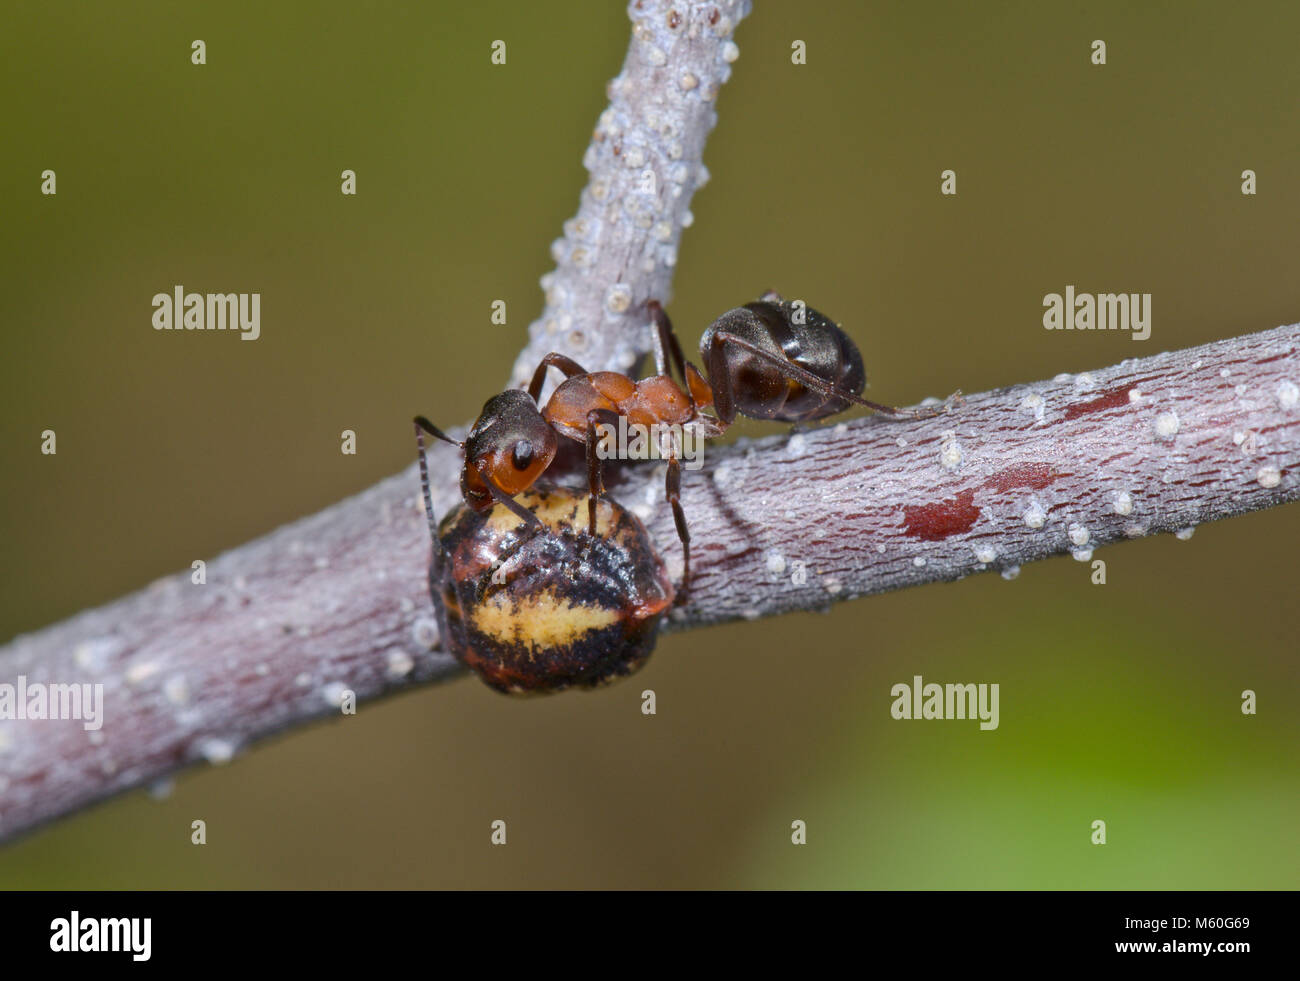 Nut Scale Insect (Eulecanium tiliae) attended by Wood Ant. Sussex, UK - Stock Image